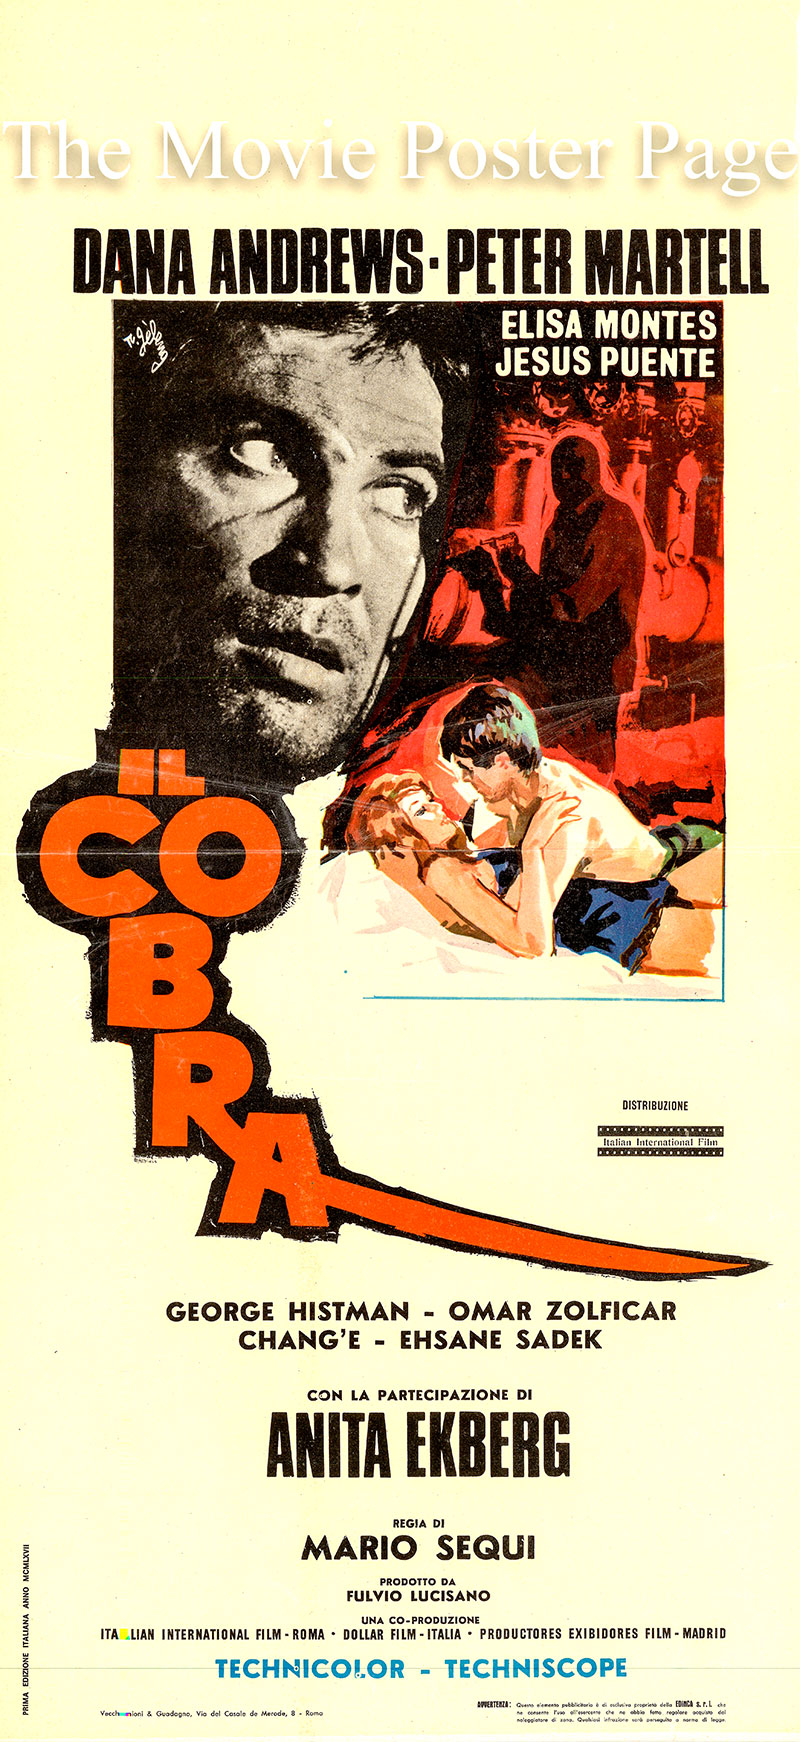 Pictures is the 1968 Italian locandina promotional poster for the Mario Segui film The Cobra, starring Anita Ekberg.